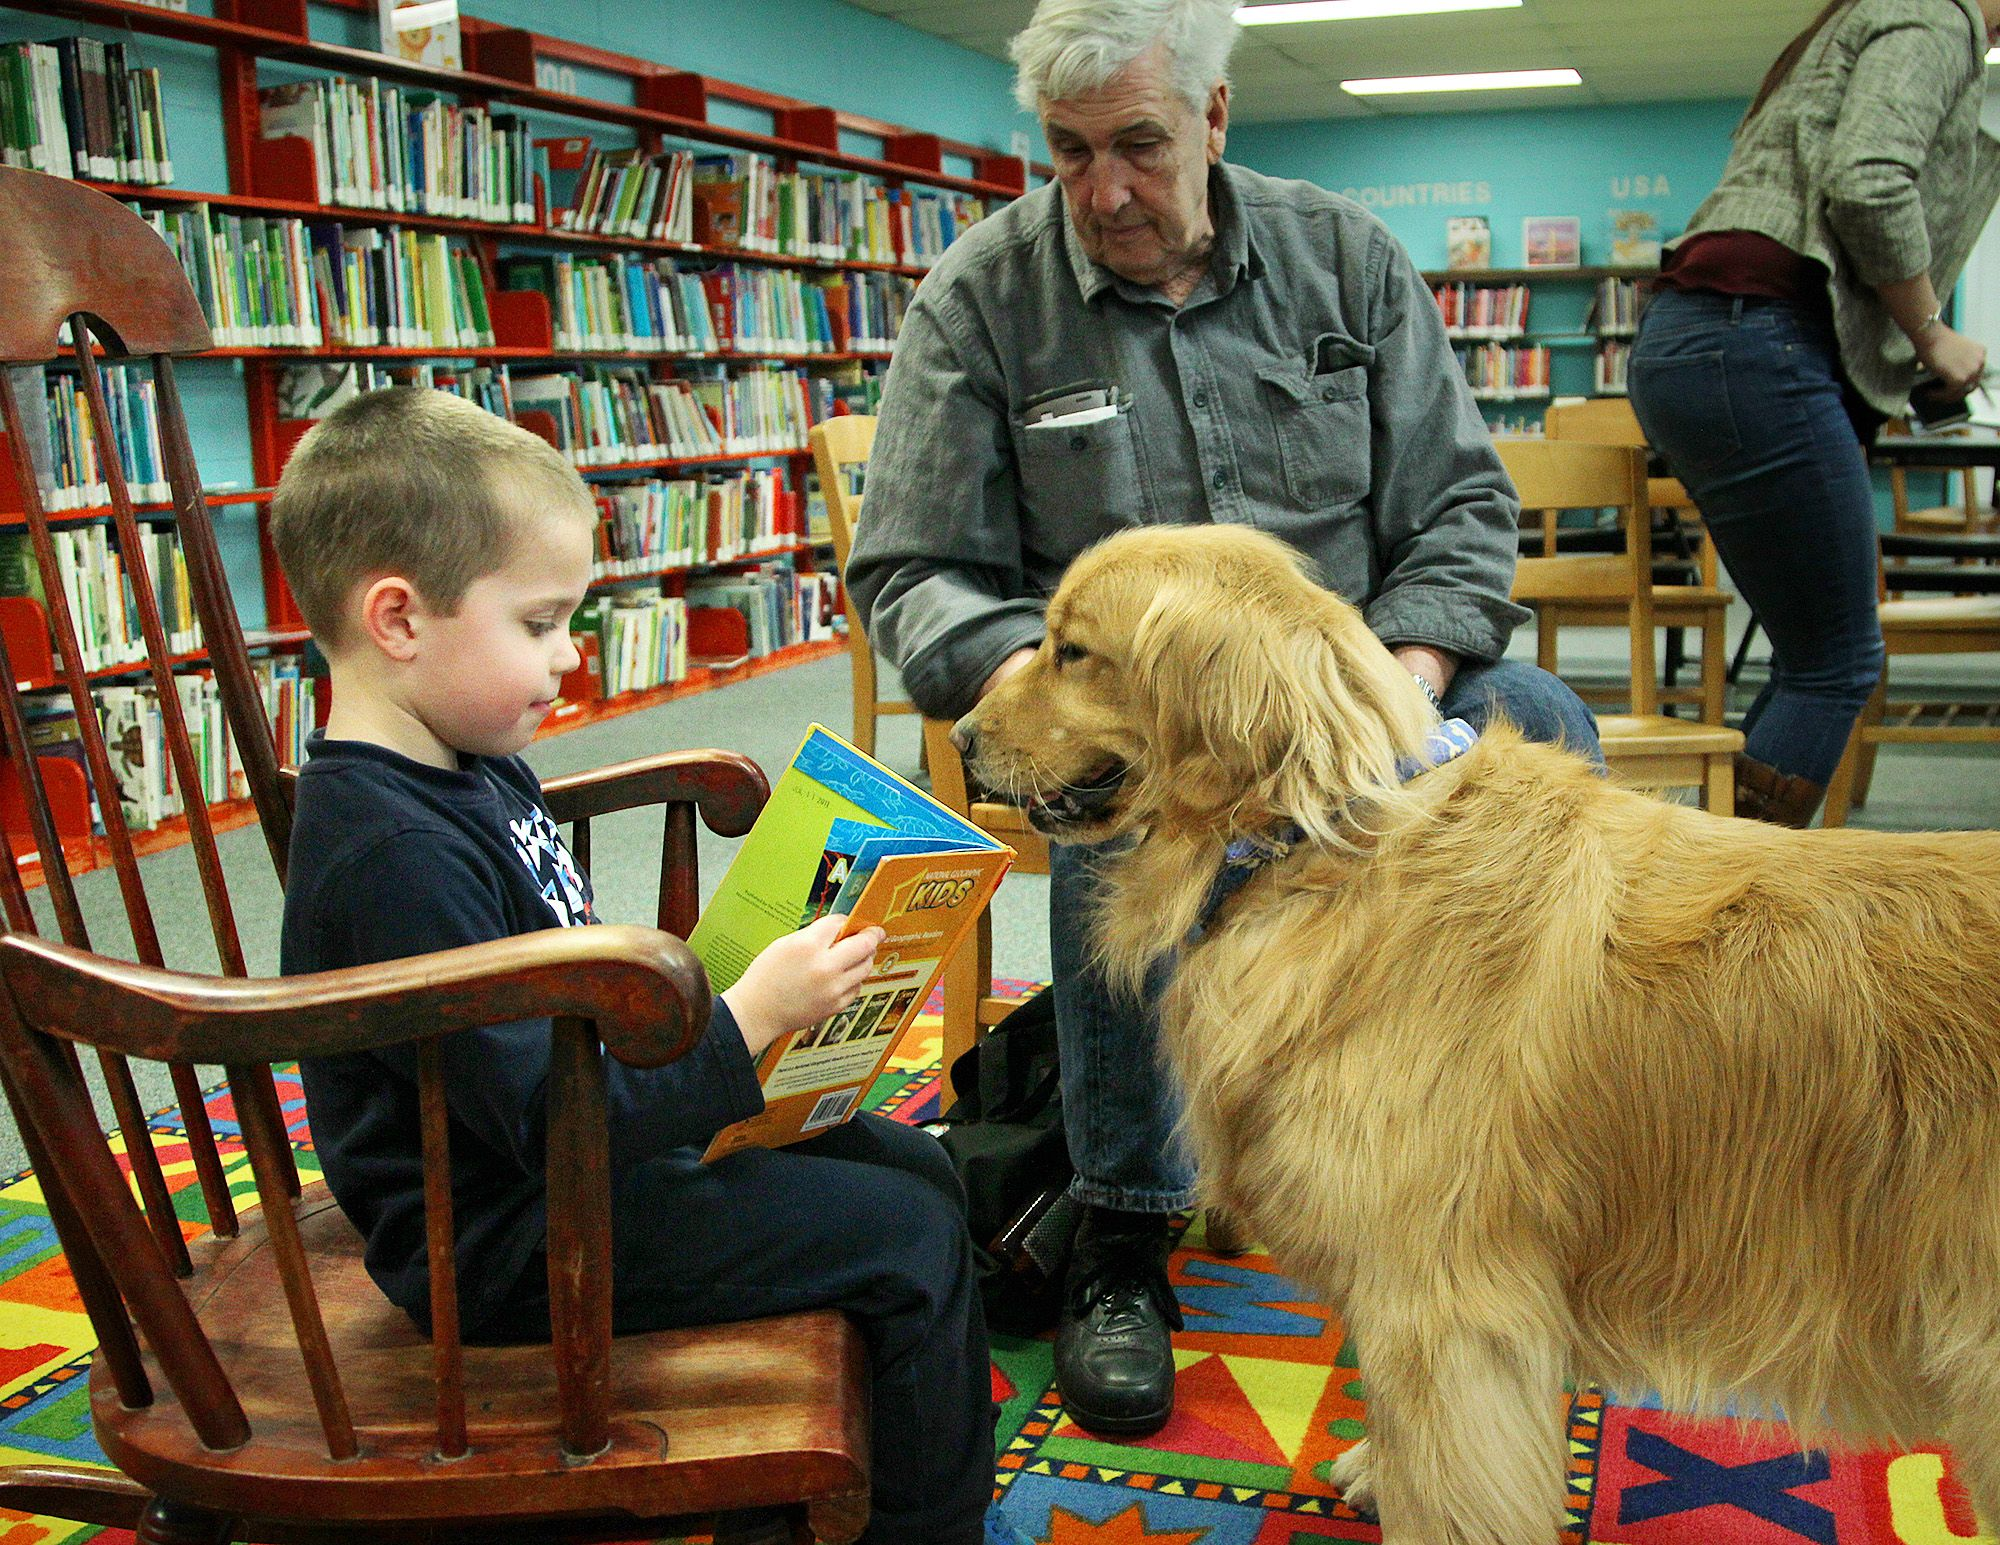 Chase Norkus, 5, of Braintree, reads to Merryl, a golden retriever, belonging to Steve White, of Weymouth who visits the Children's Room of the Tufts Library,Thursday, March 2, 2017.  Gary Higgins/The Patriot Ledger